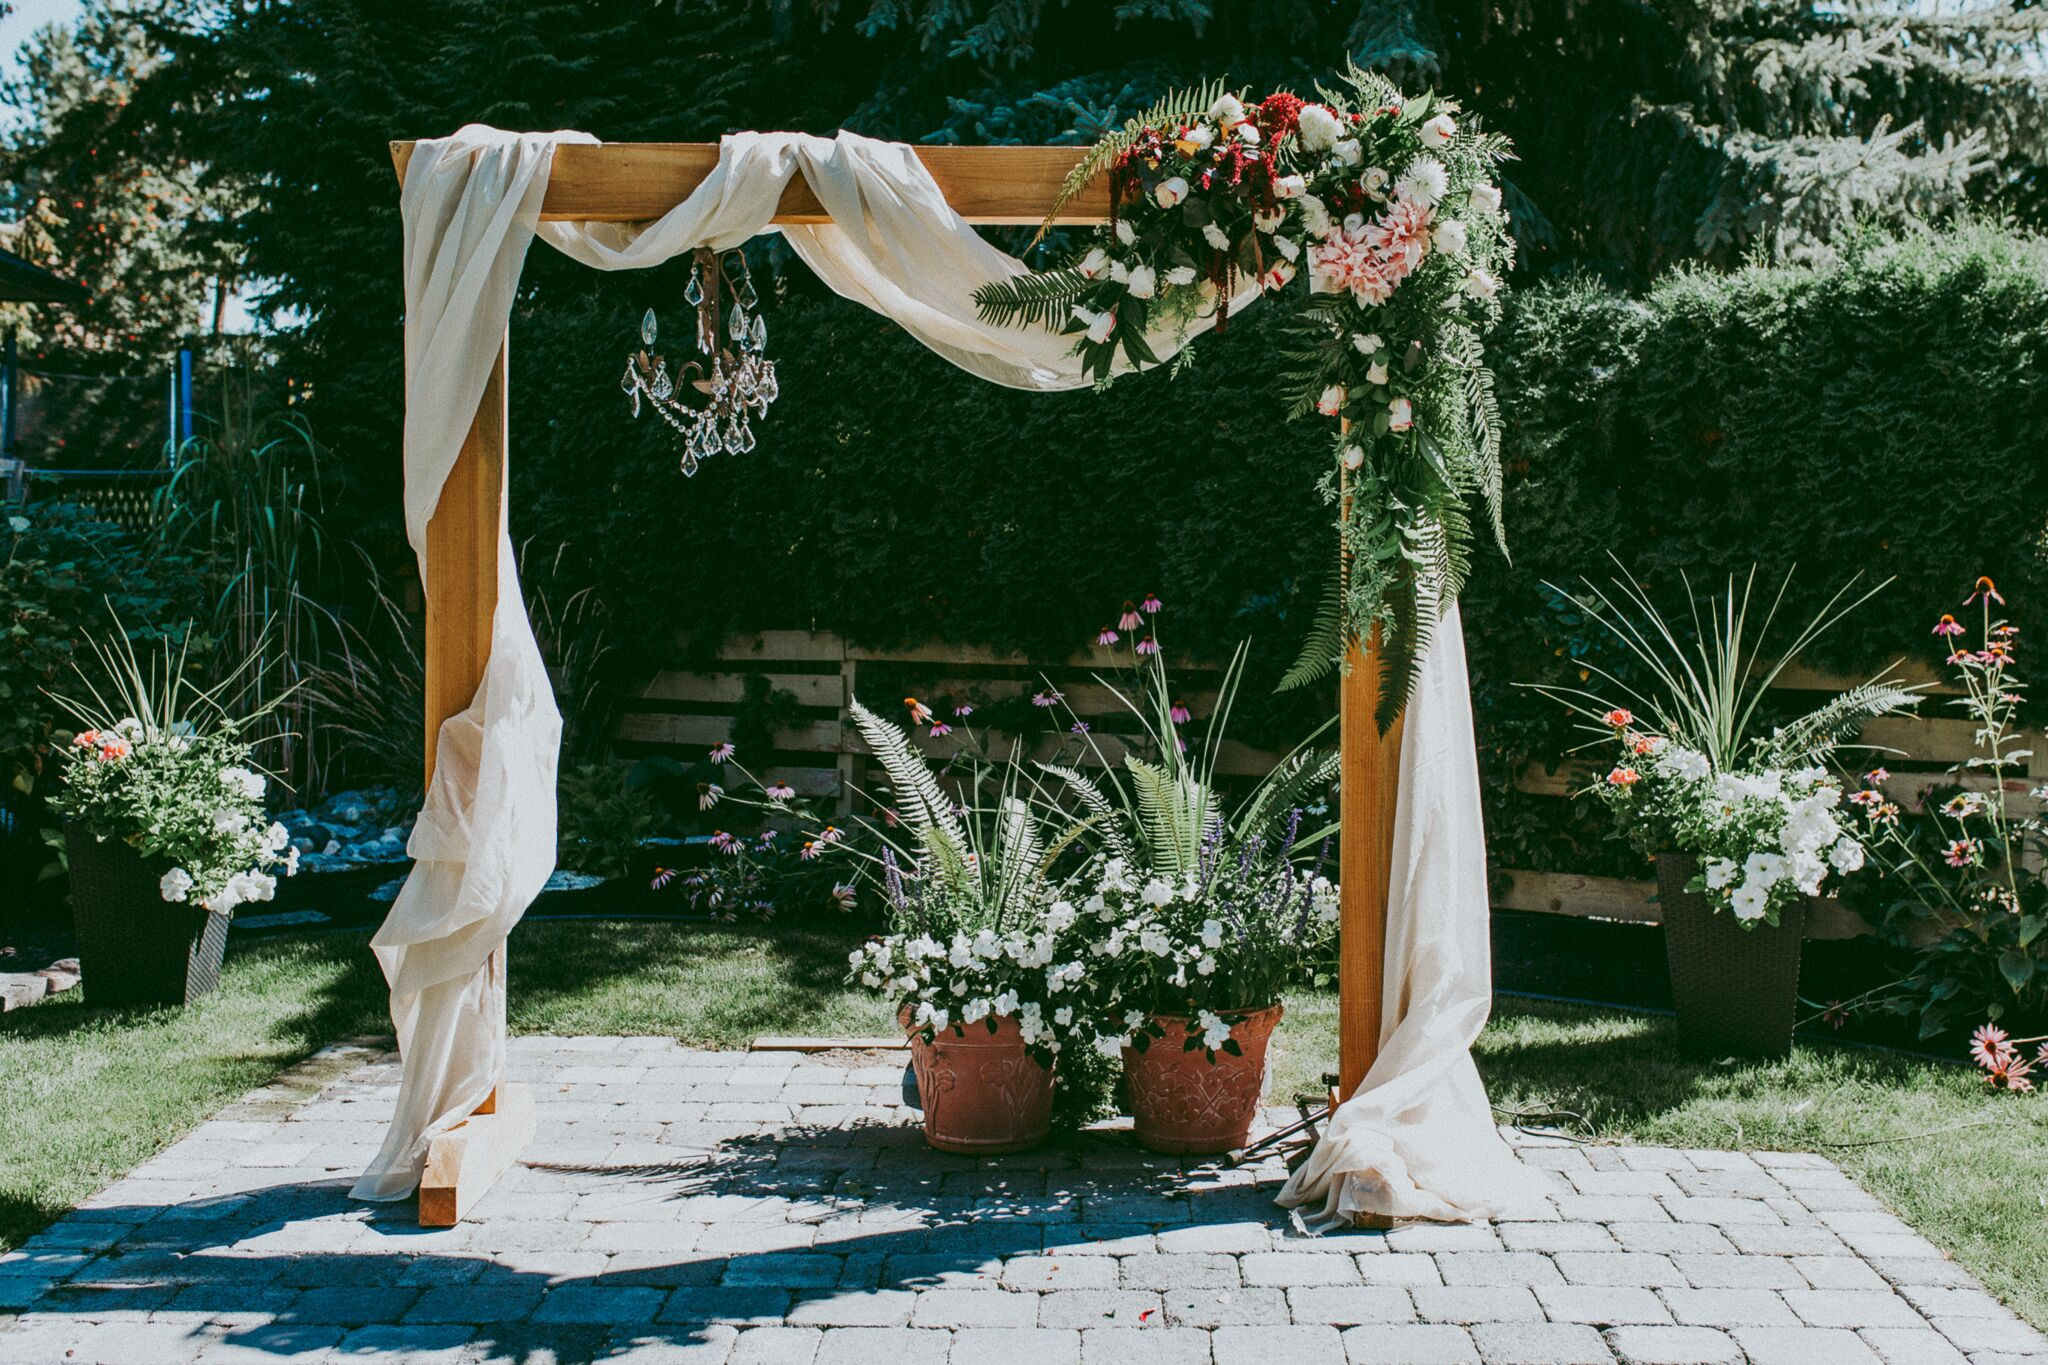 Backup Plans For Your Outdoor Wedding: DIY Wooden Wedding Arch With Flower Garland